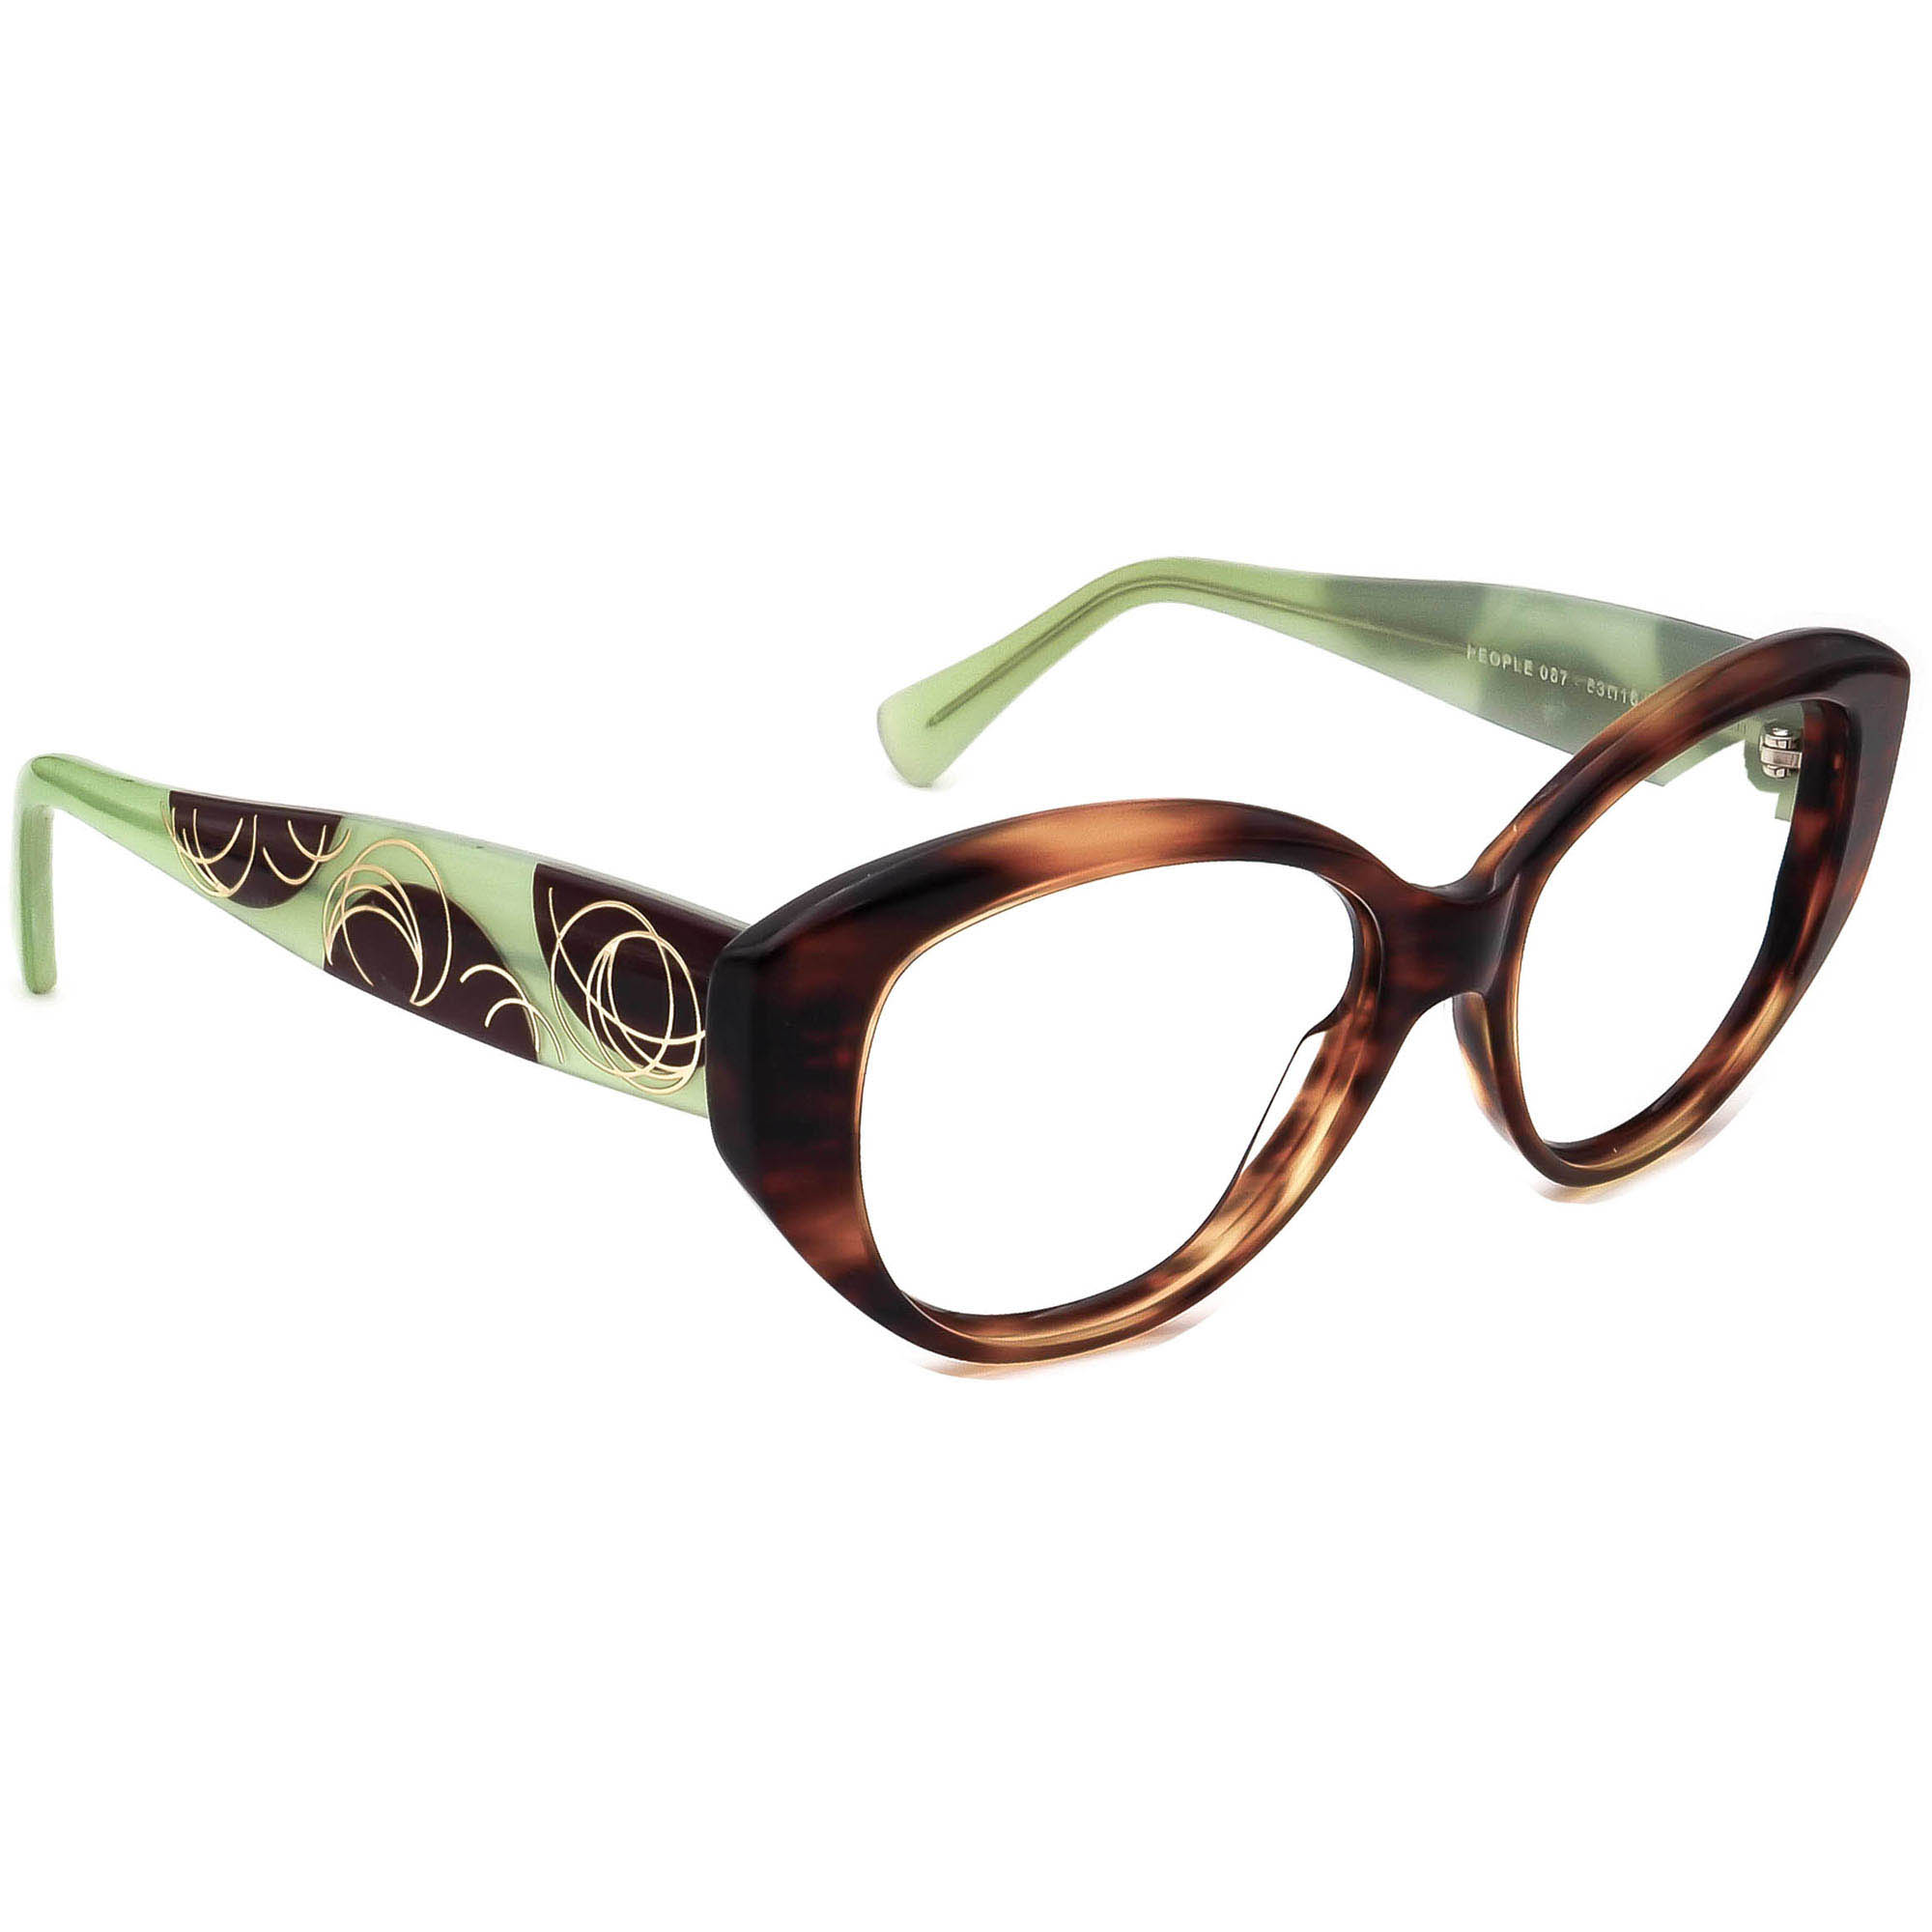 Jean Lafont People 067 Sunglasses Frame Only